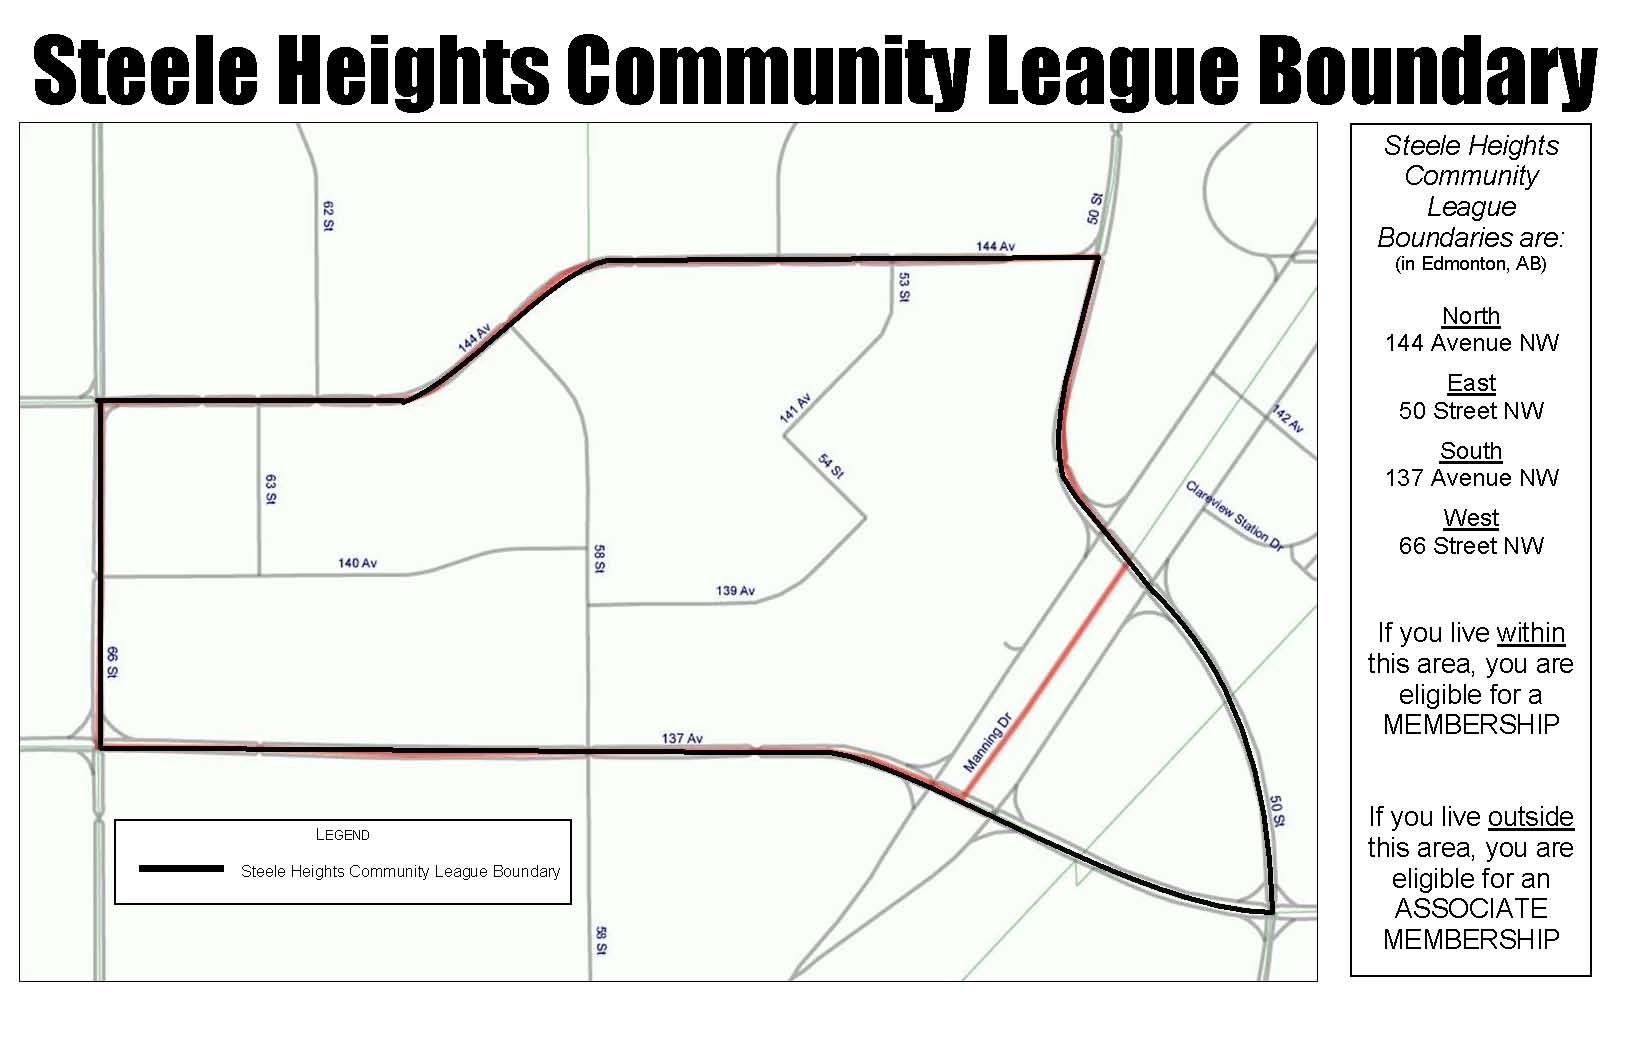 steele heights community league boundary